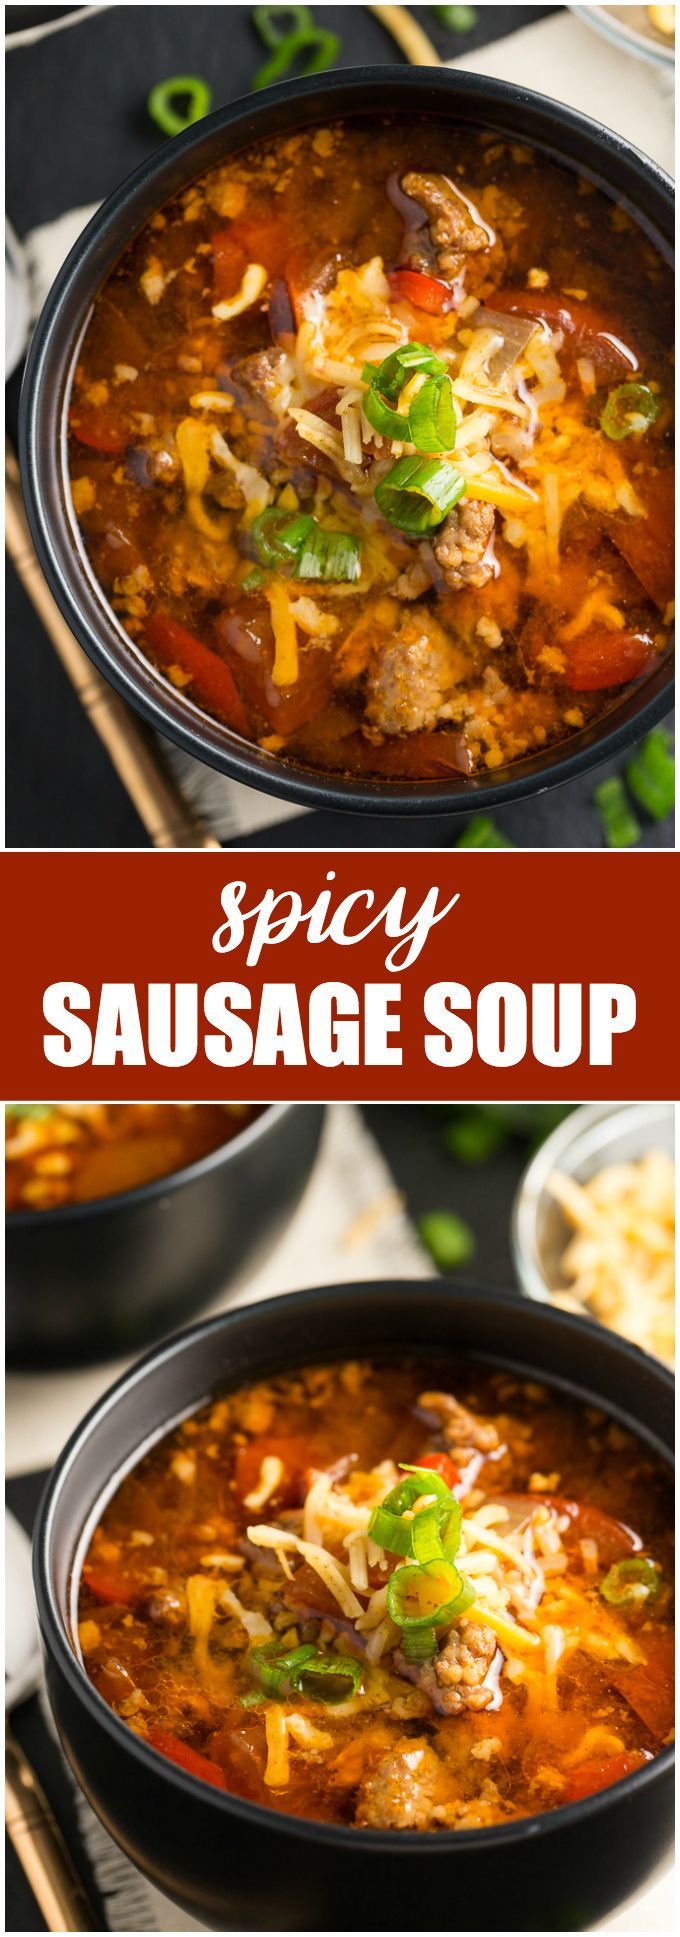 Spicy Sausage Soup - Filled with hot Italian sausage, red peppers and tomatoes. This soup packs a powerful flavour punch!